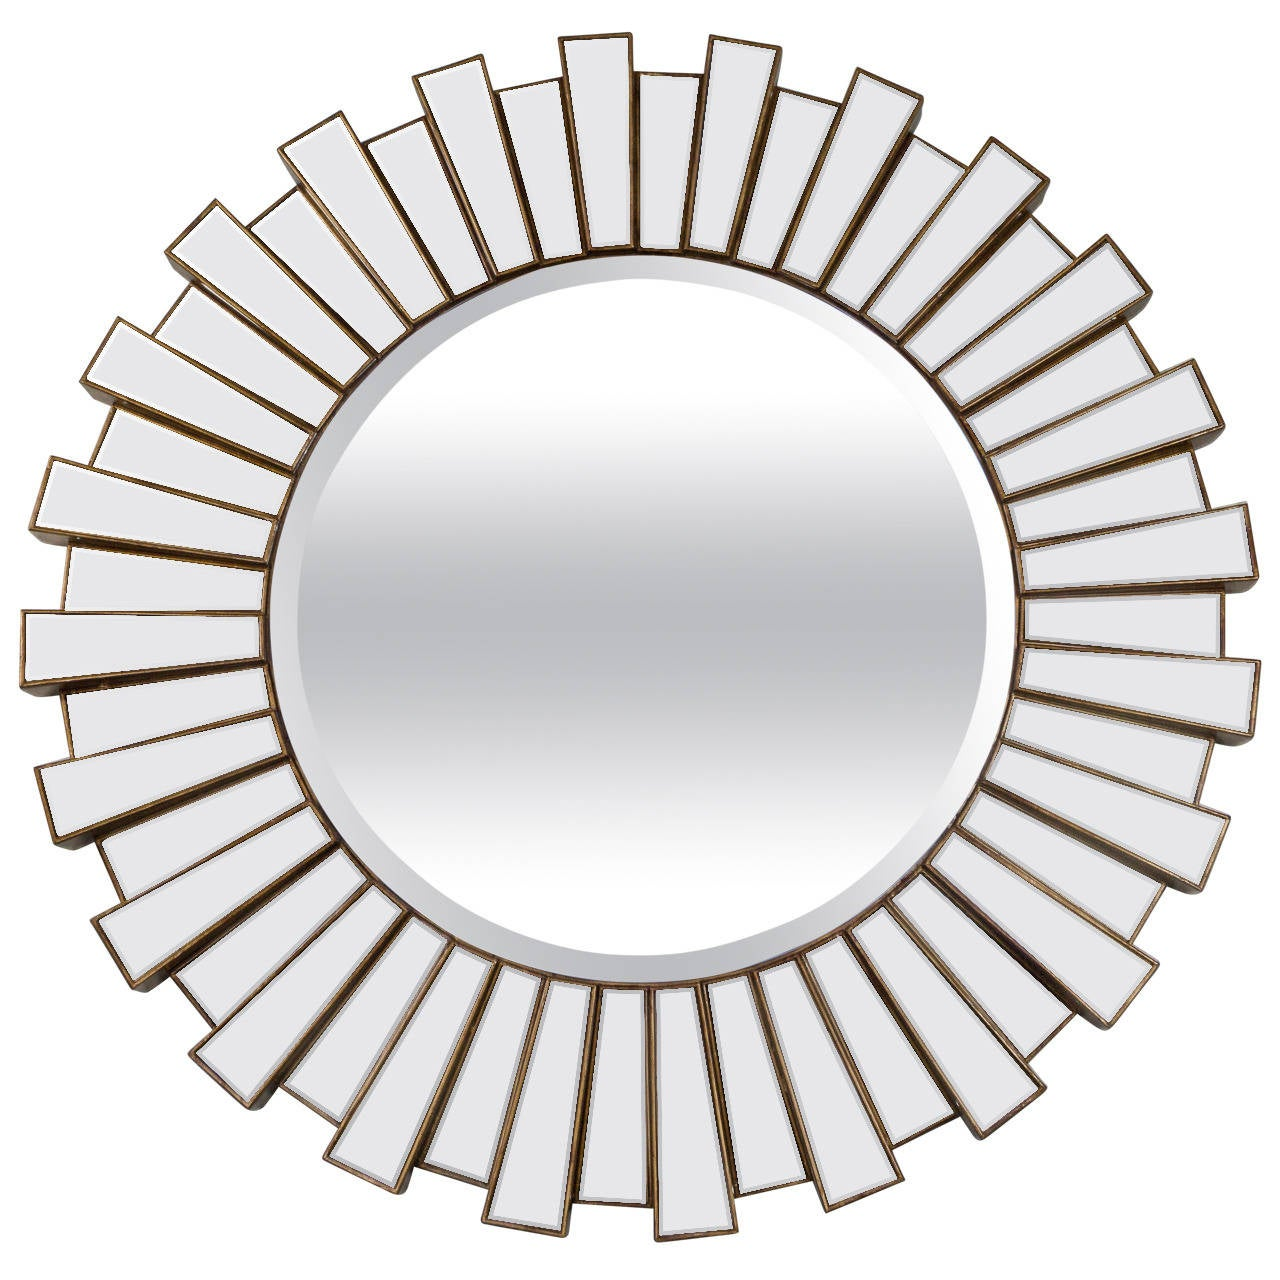 Large round sunburst bevel mirror at 1stdibs for Circle mirror